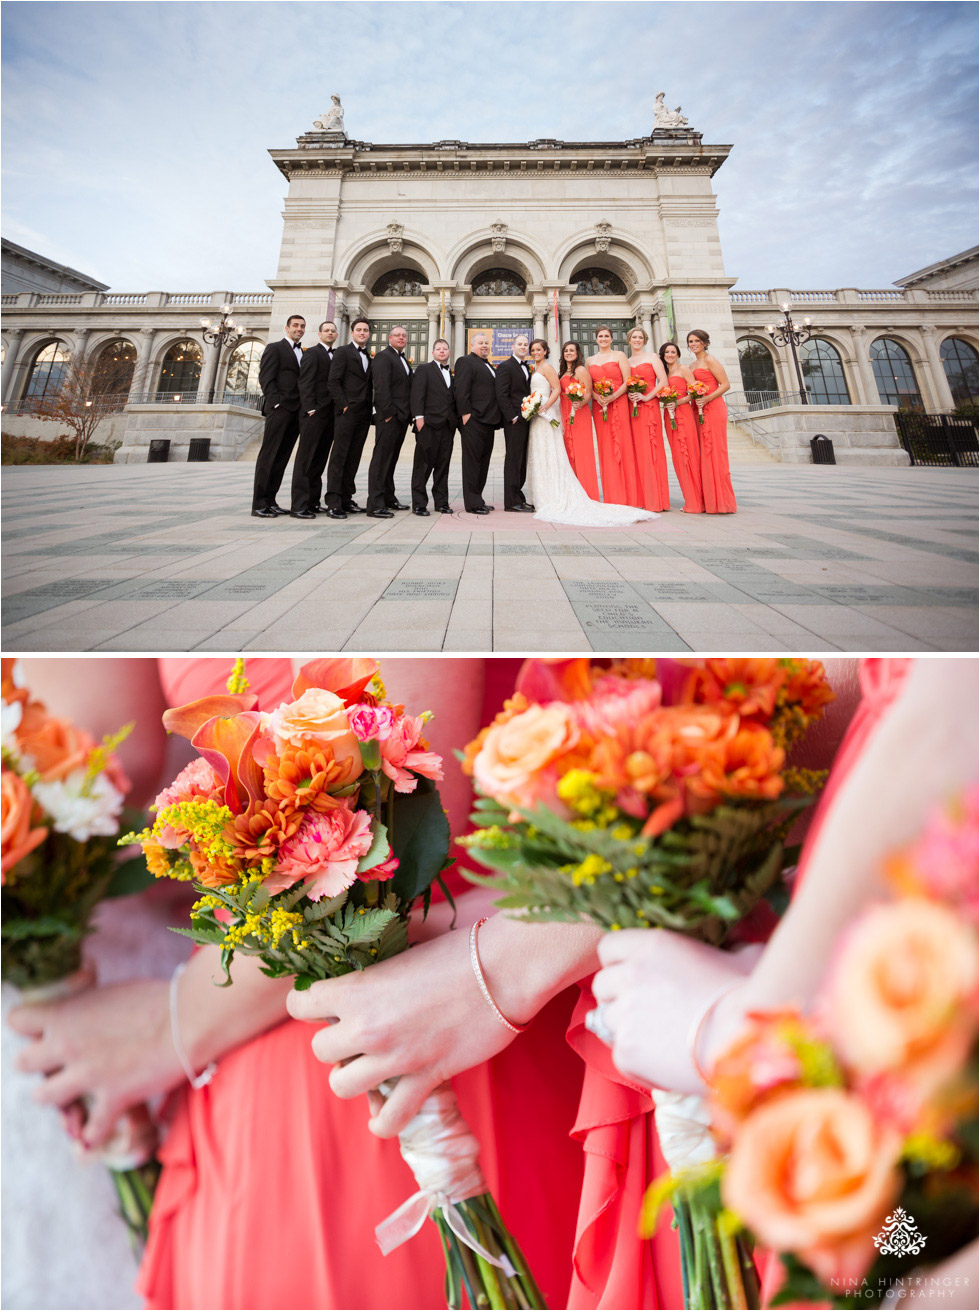 Bridal party at Please Touch Museum at Memorial Hall in Philadelphia, Pennsylvania - Blog of Nina Hintringer Photography - Wedding Photography, Wedding Reportage and Destination Weddings